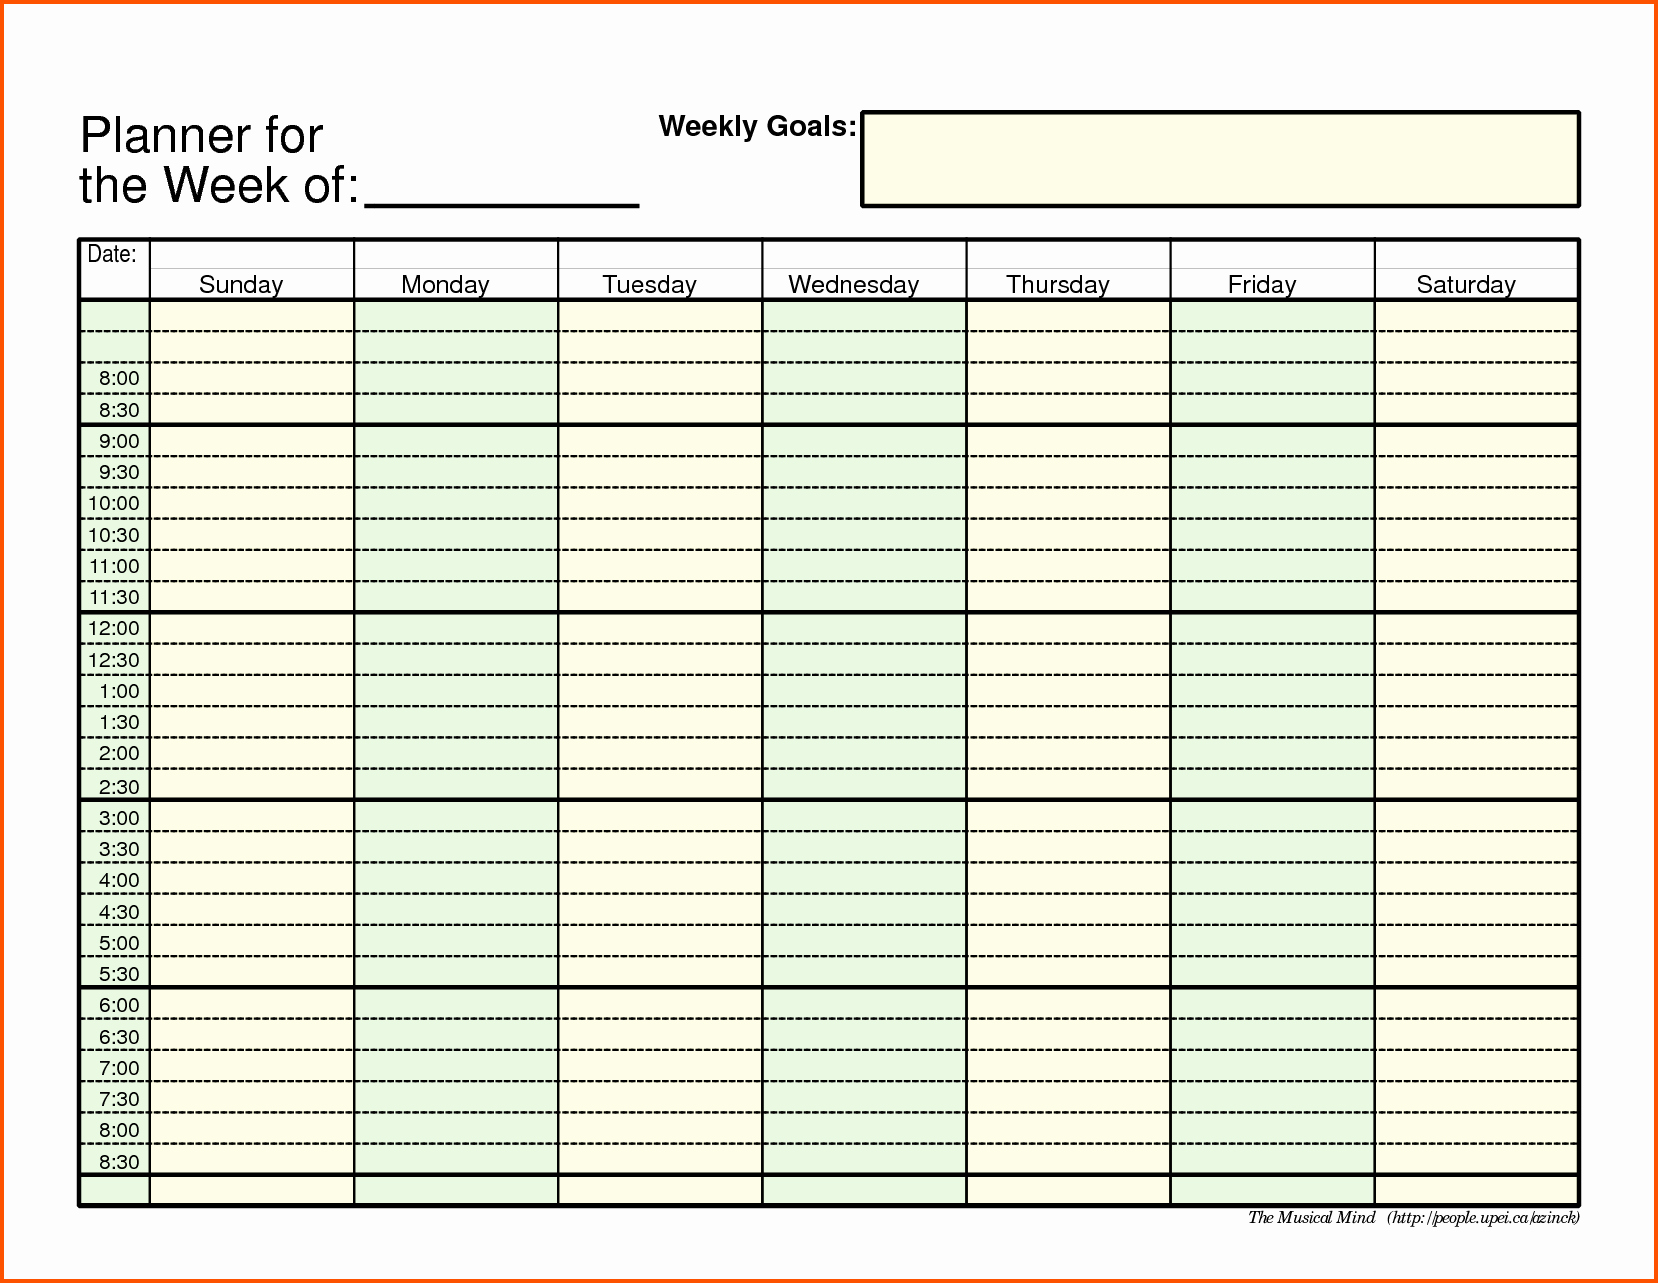 Weekly Schedule Template Pdf Inspirational Weekly Schedule Template Pdf